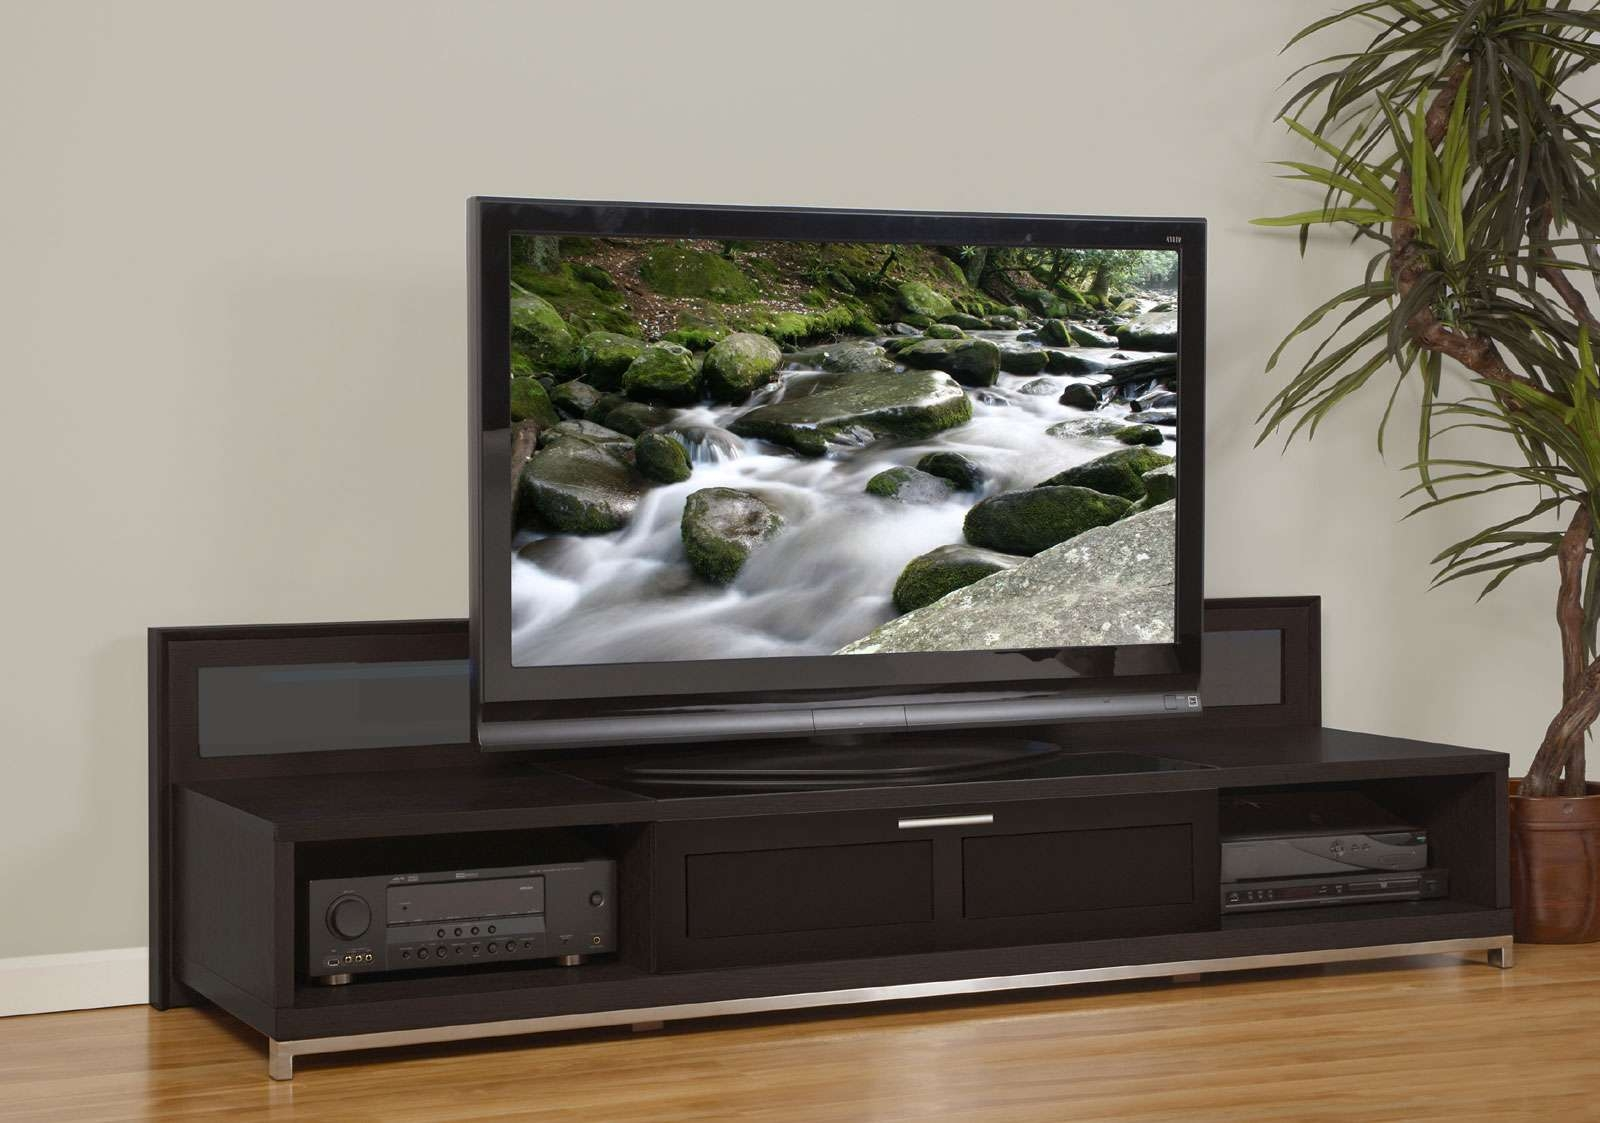 Mocca Stained Solid Wood Low Profile Tv Stand With Stainless Steel Regarding Modern Low Profile Tv Stands (View 10 of 15)